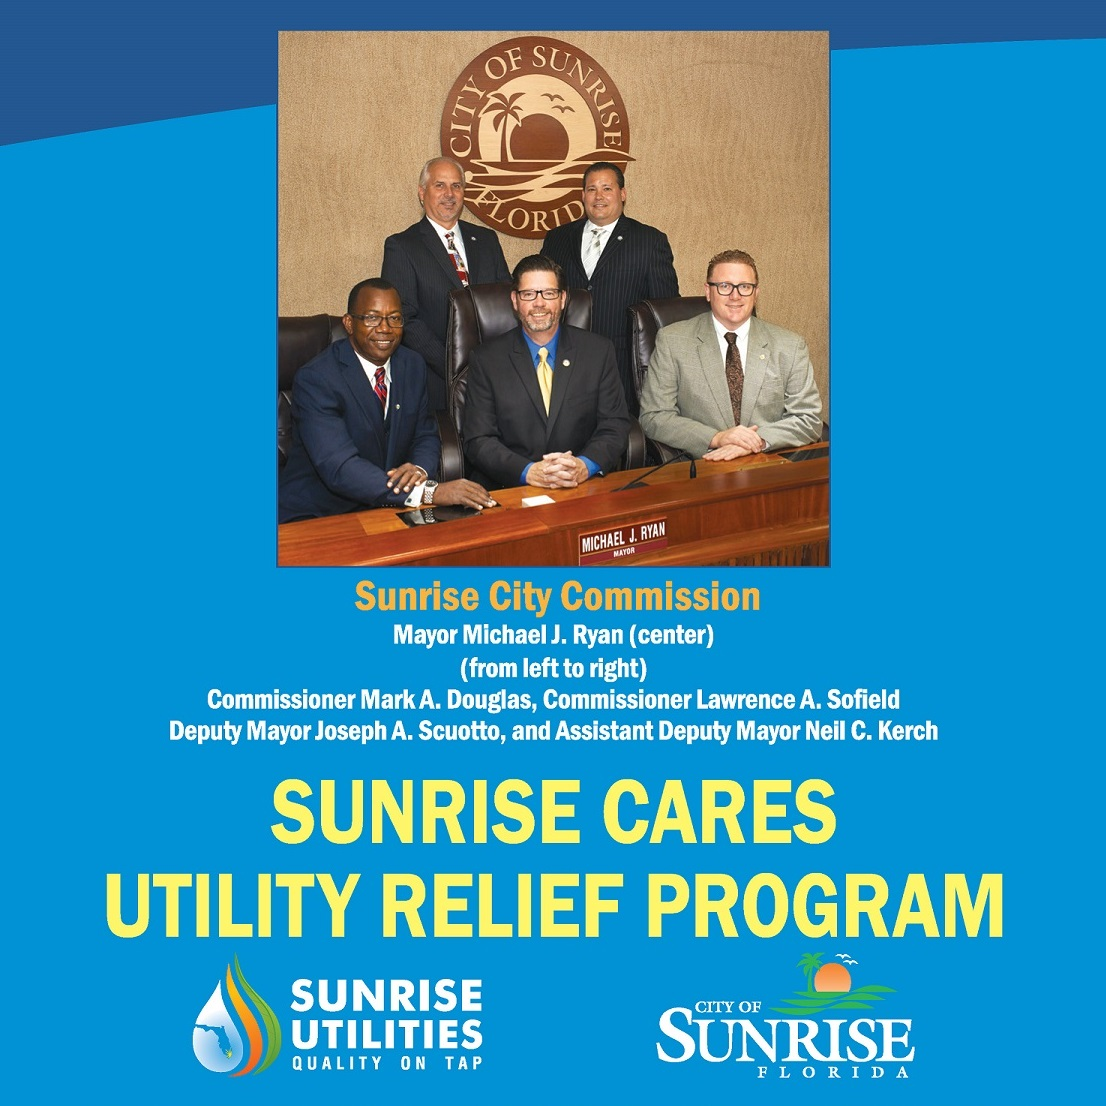 Sunrise Cares Utility Relief Program